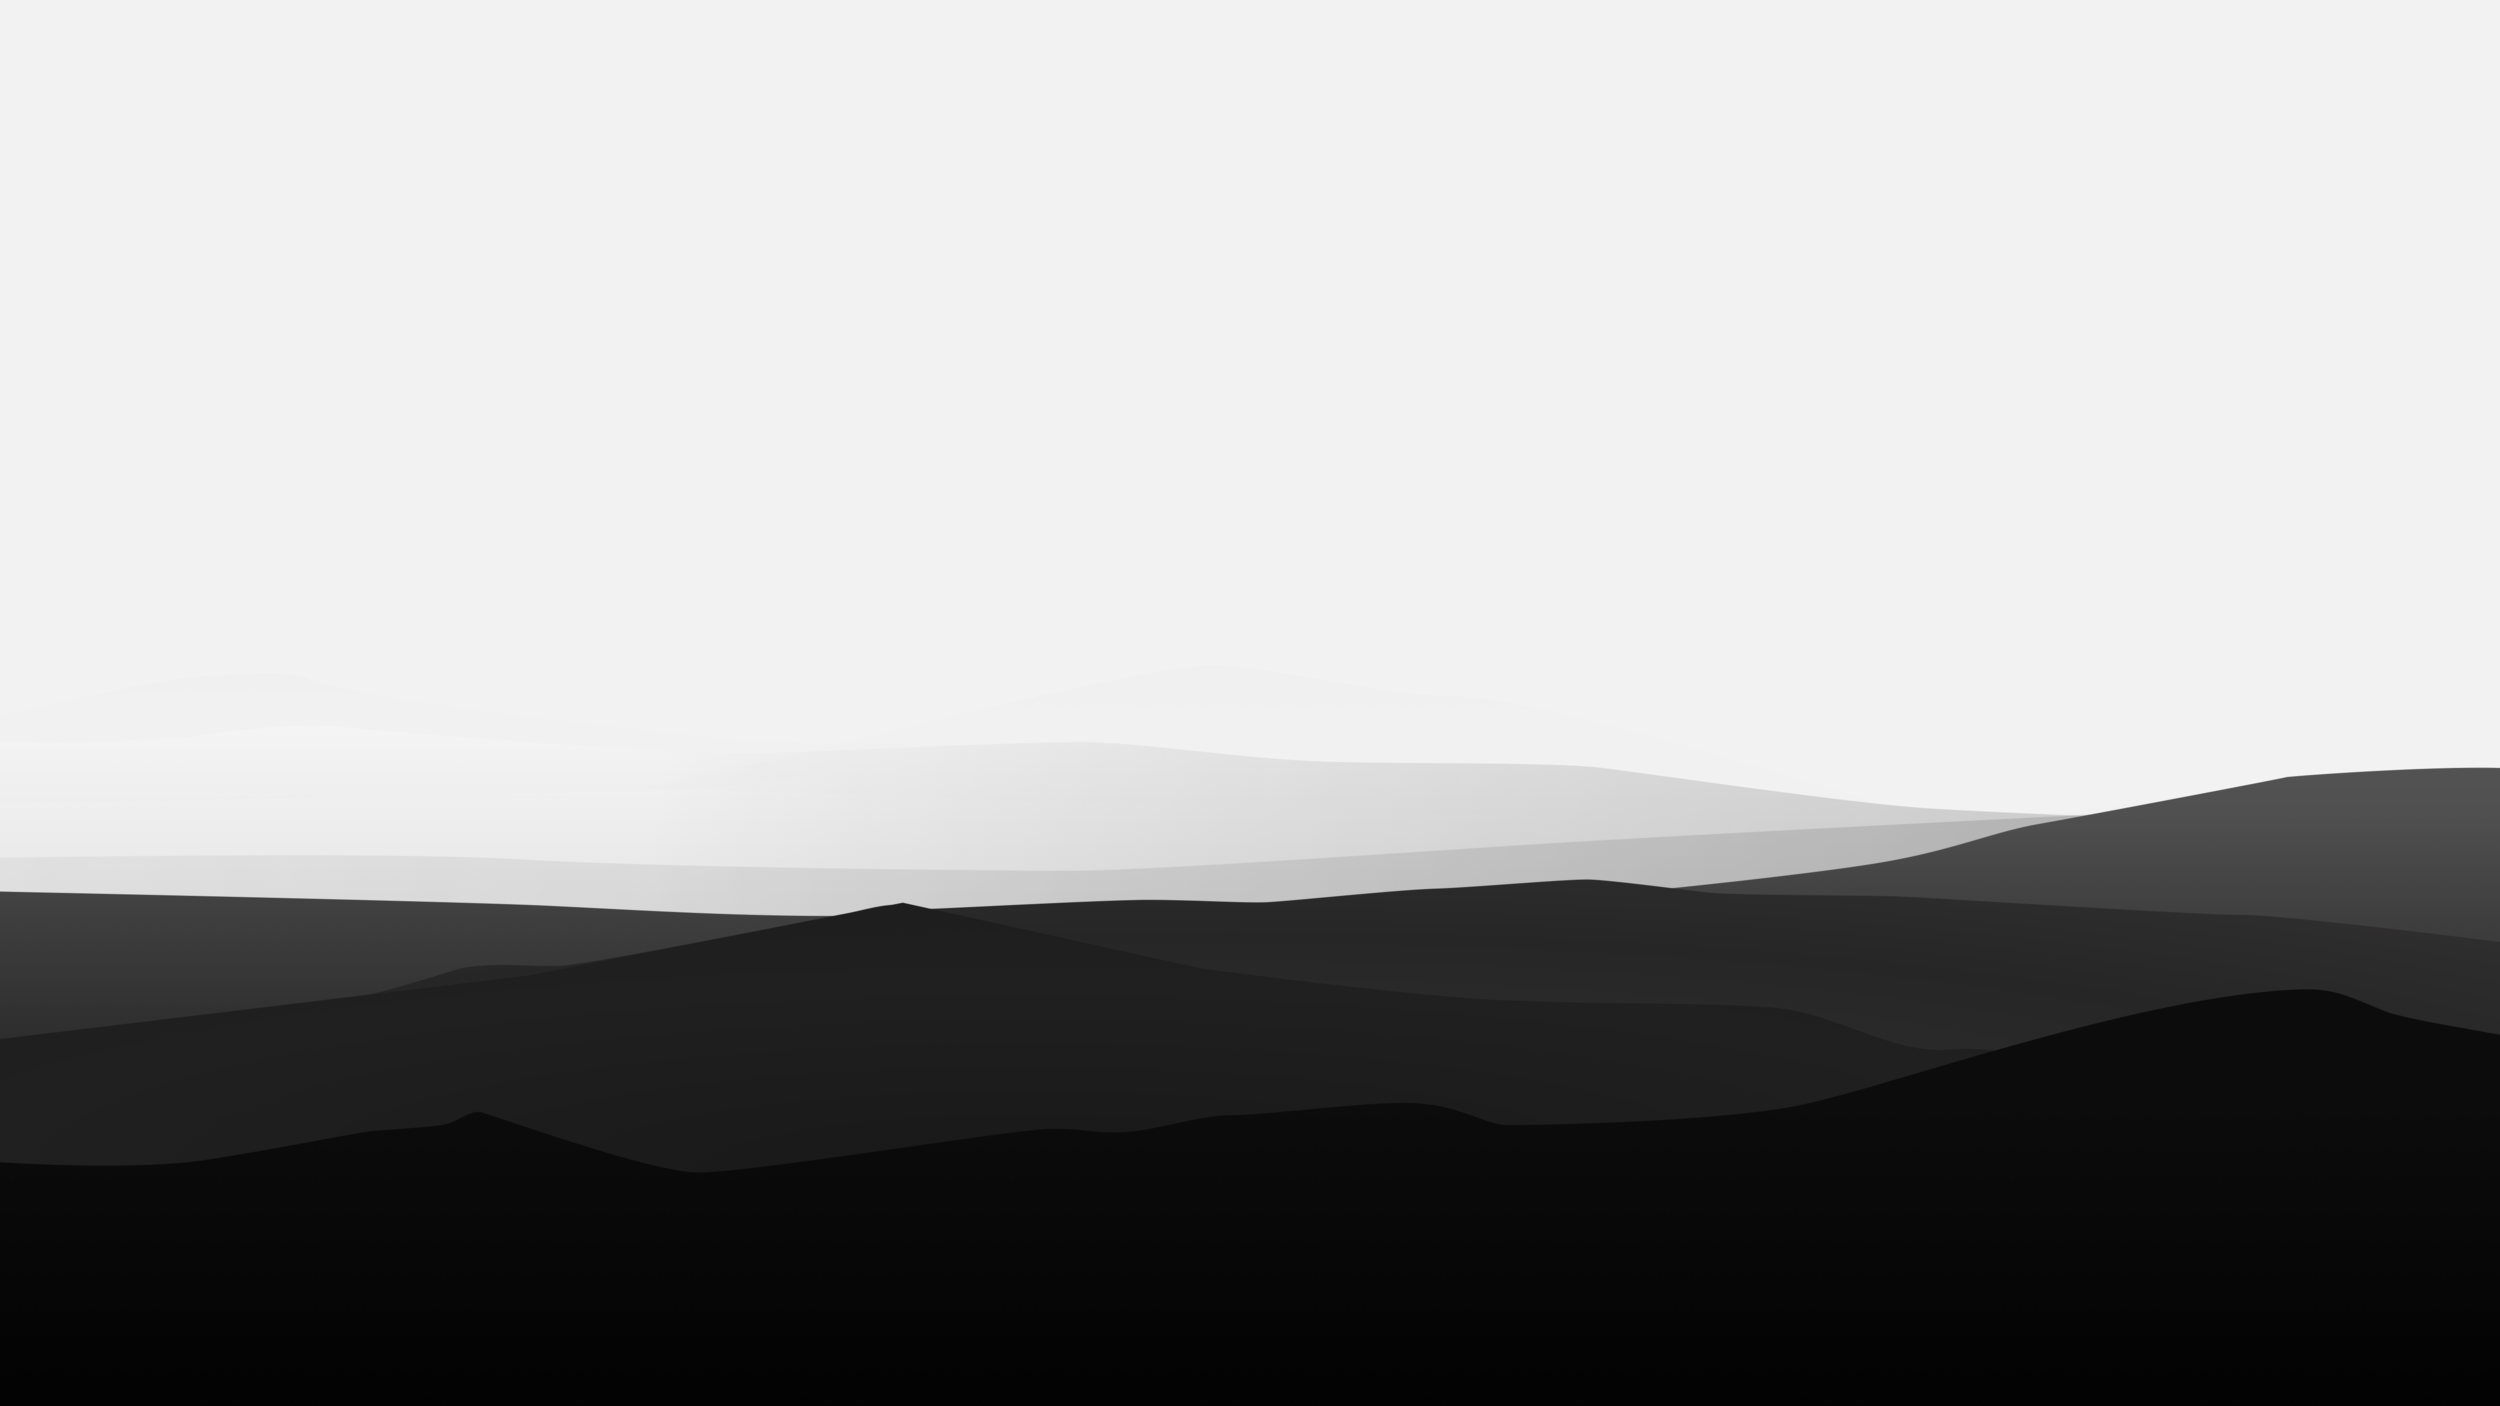 Minimal Mountains Wallpaper Pack For Galaxy S9 Iphone X 5k